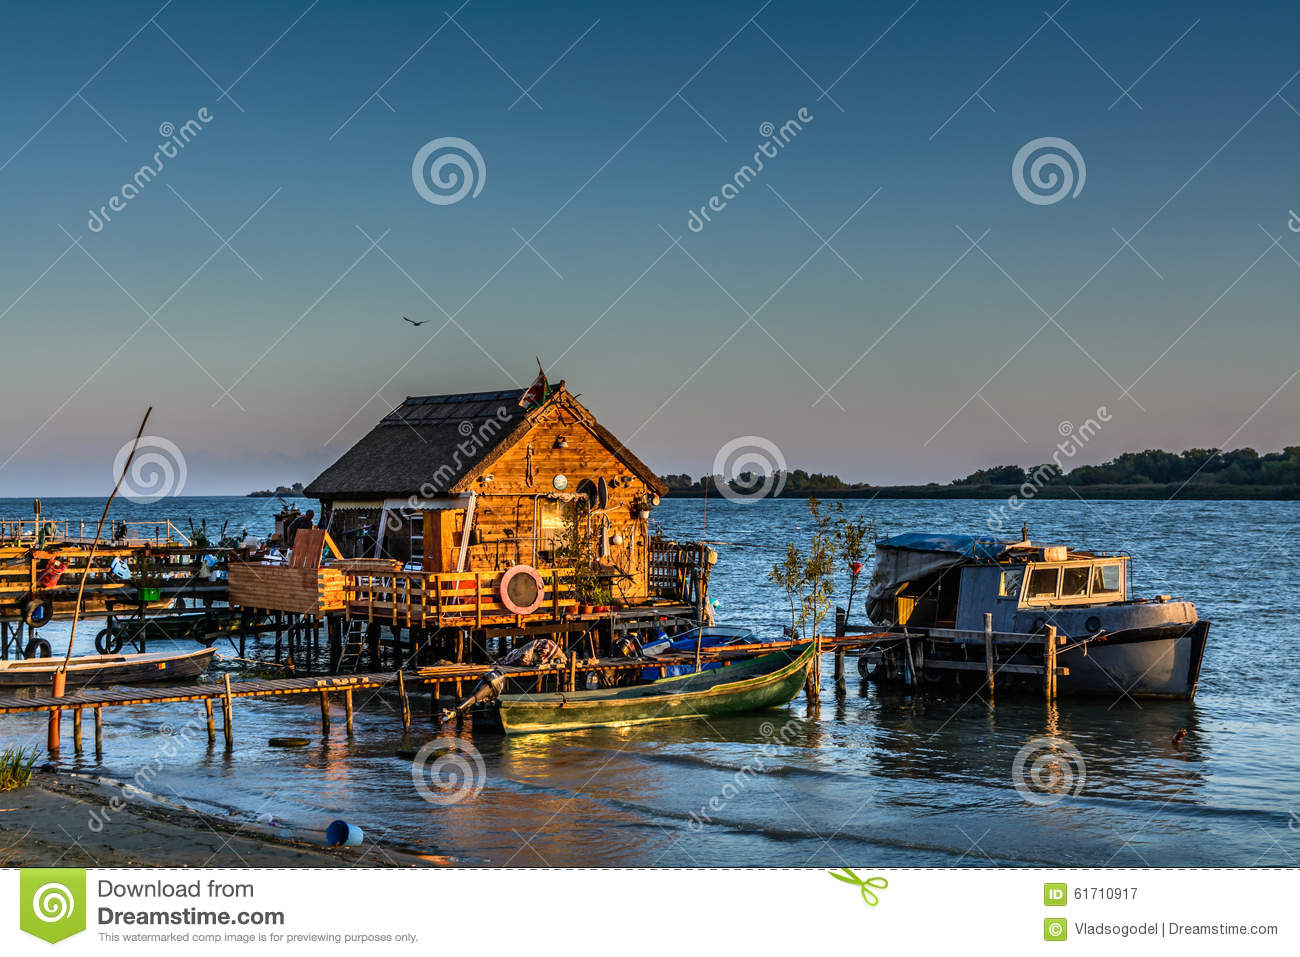 Fisherman's House, The Old Dock And The Boat On The Lake. Rustic Stock Image - Image of house ...